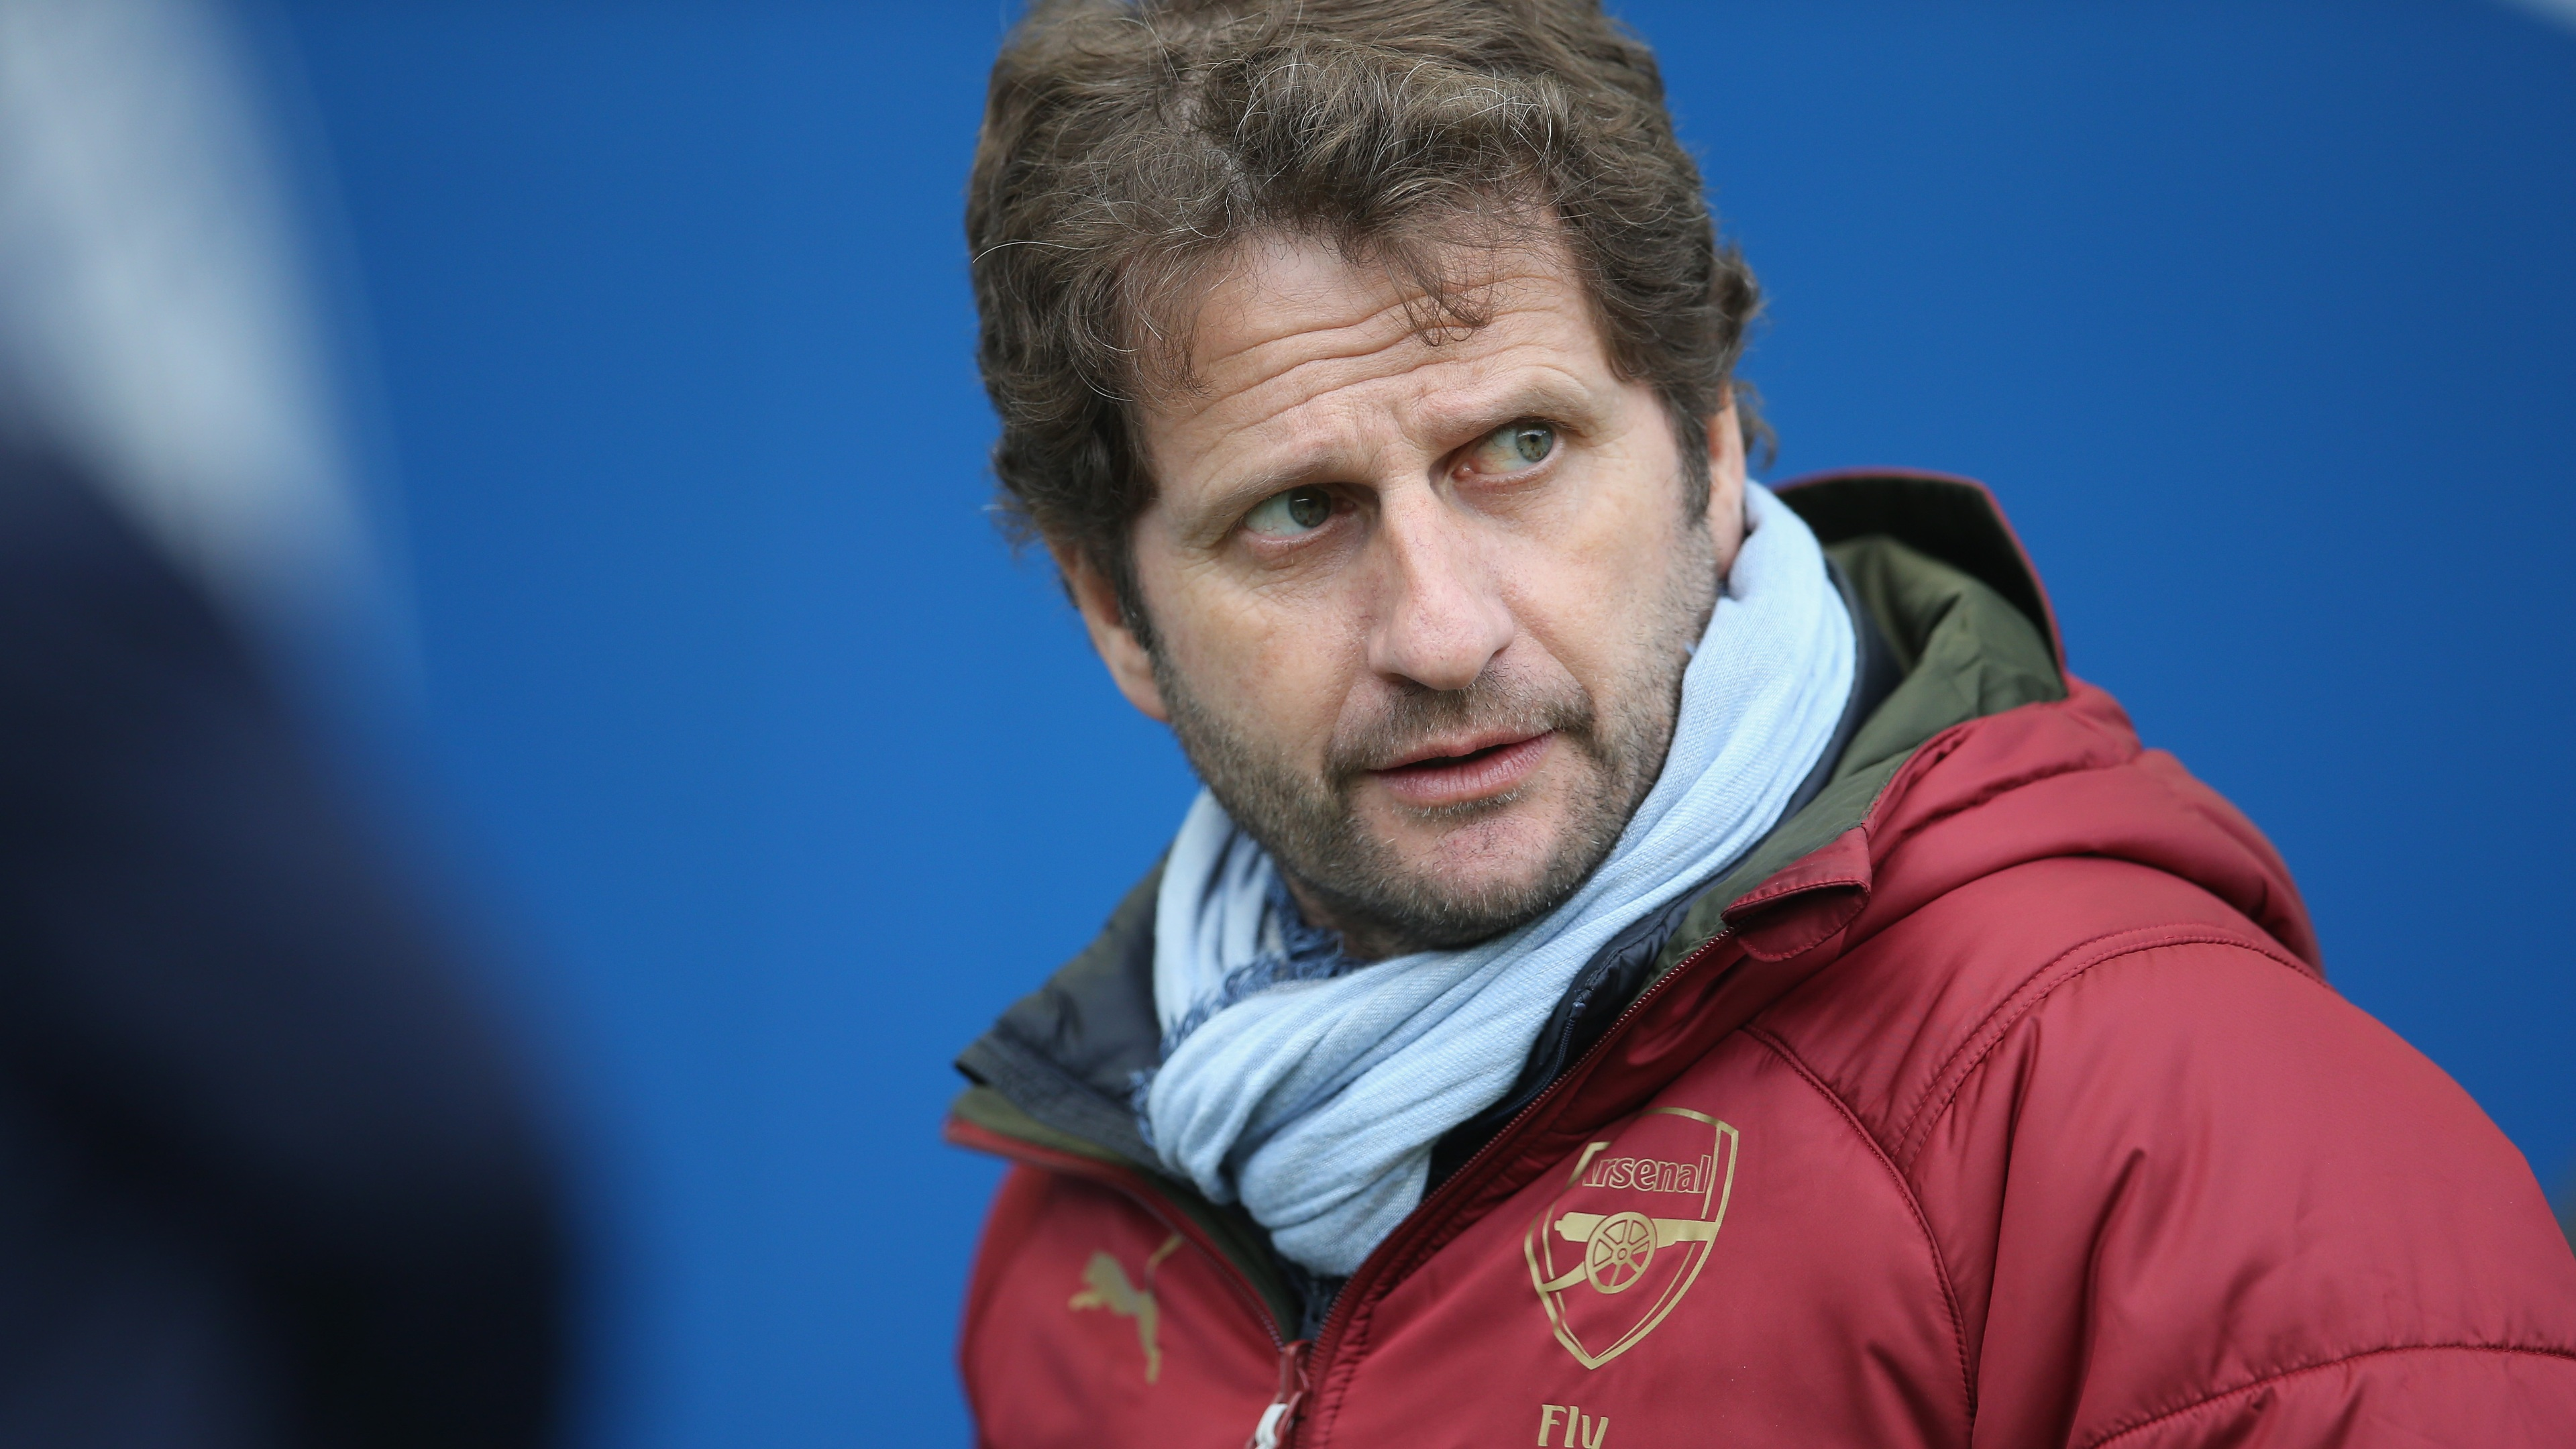 'It would be an amazing privilege' - Arsenal's Montemurro could replace Neville as England boss